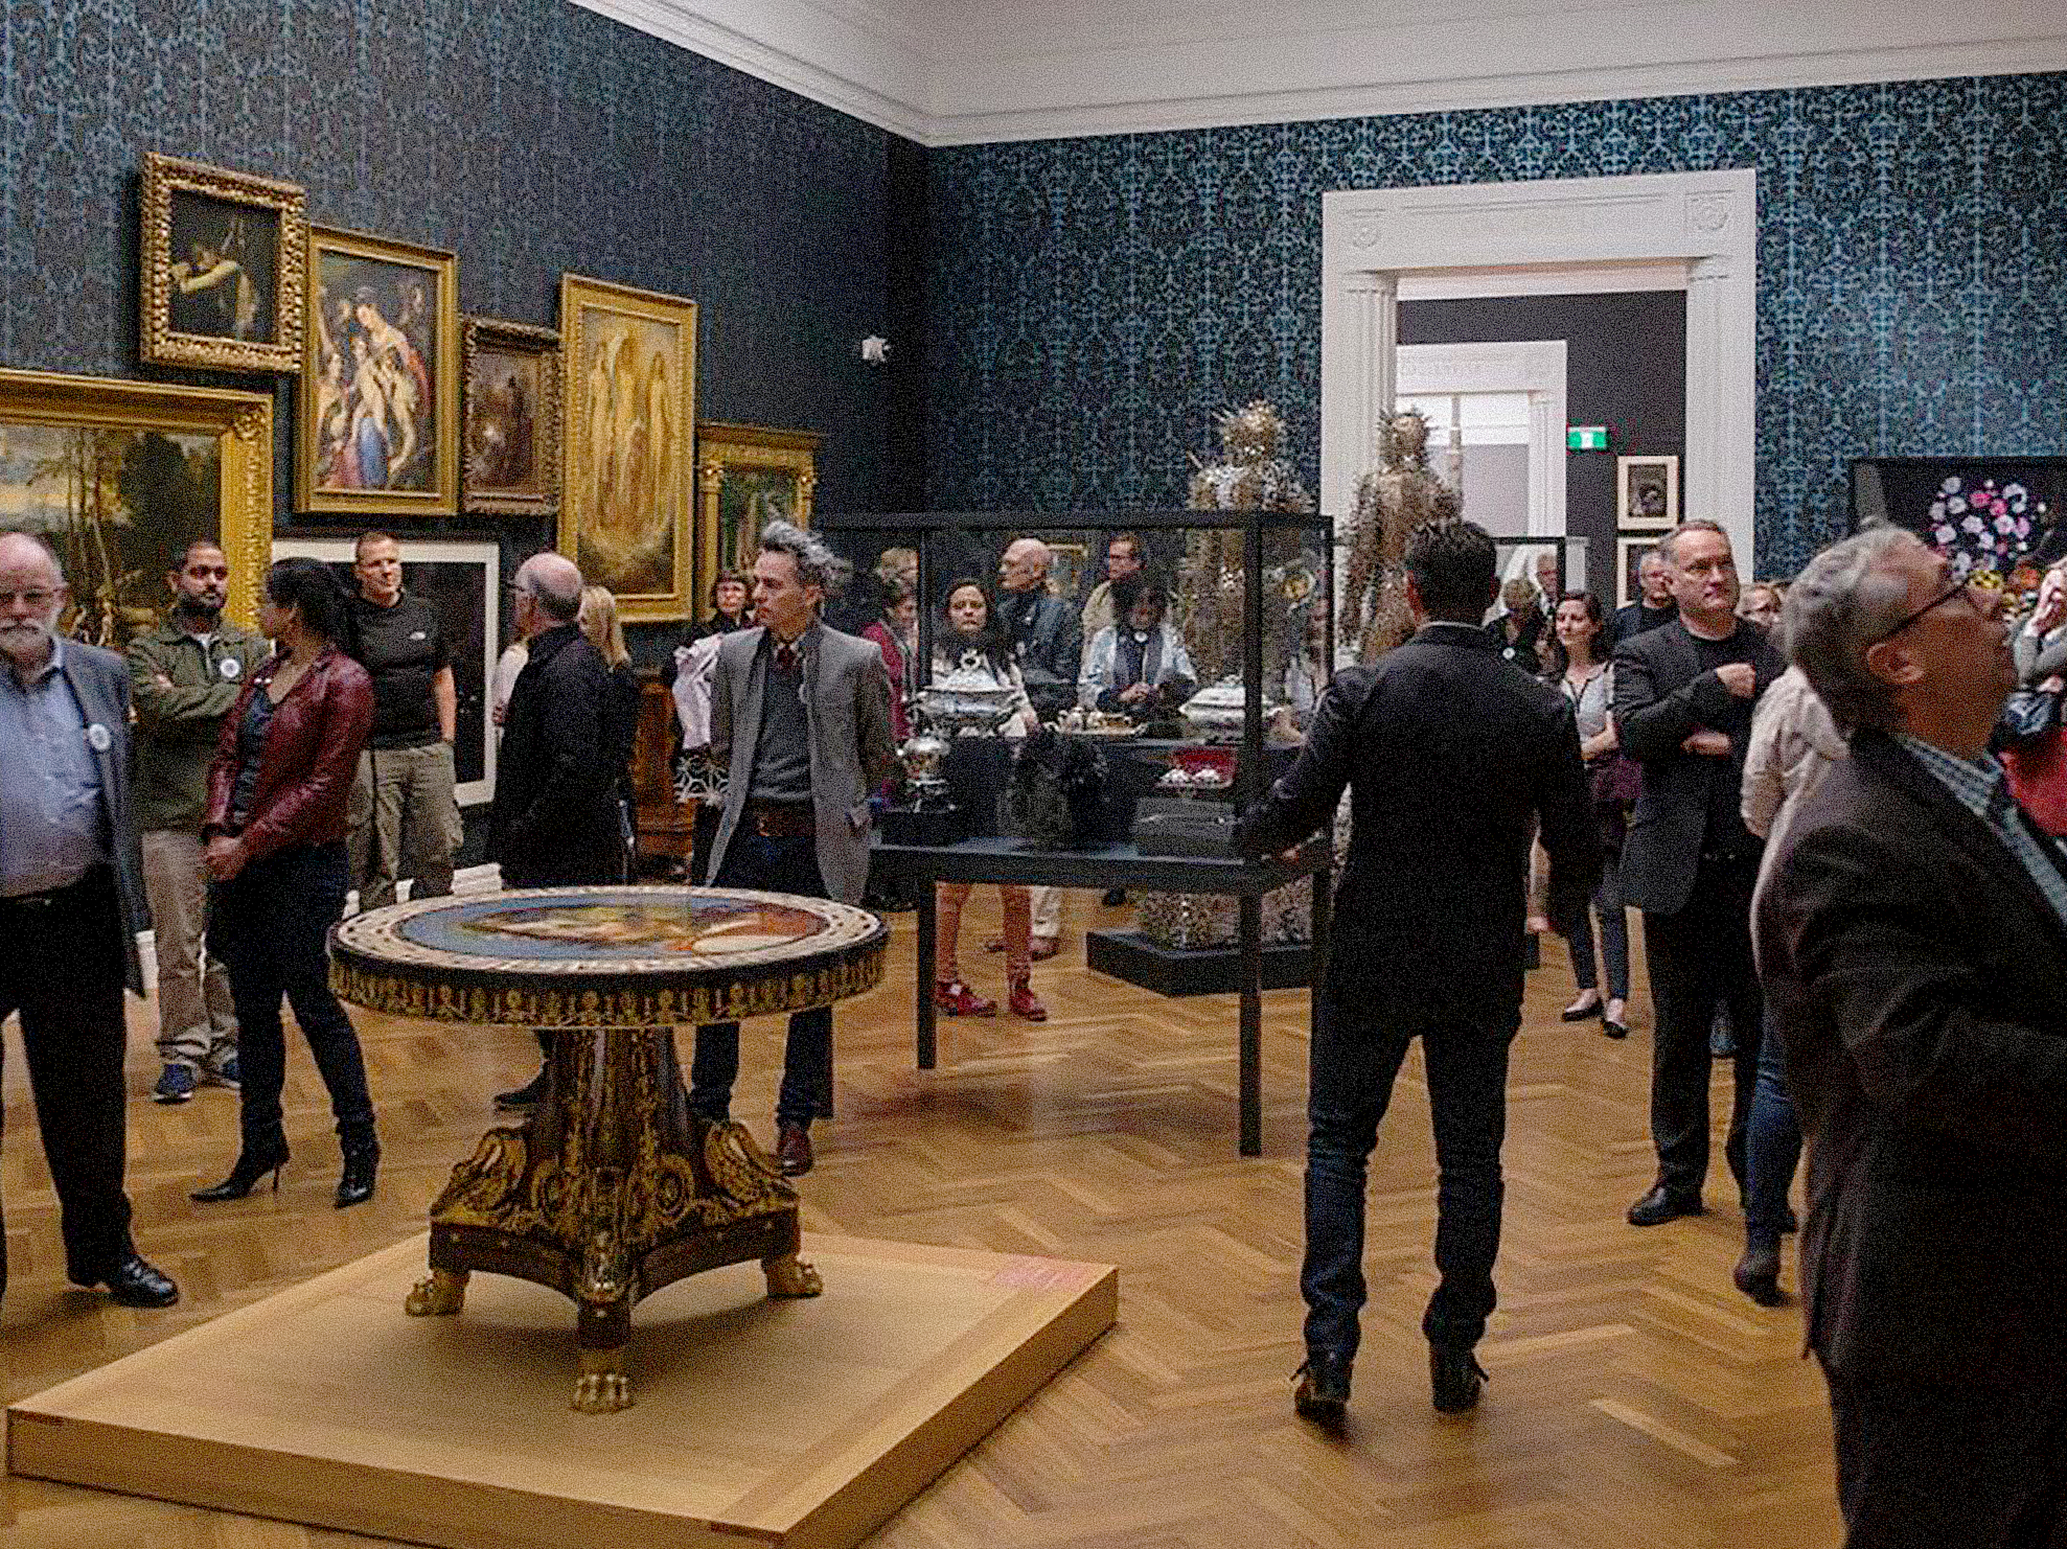 Many well dressed people exploring a museum